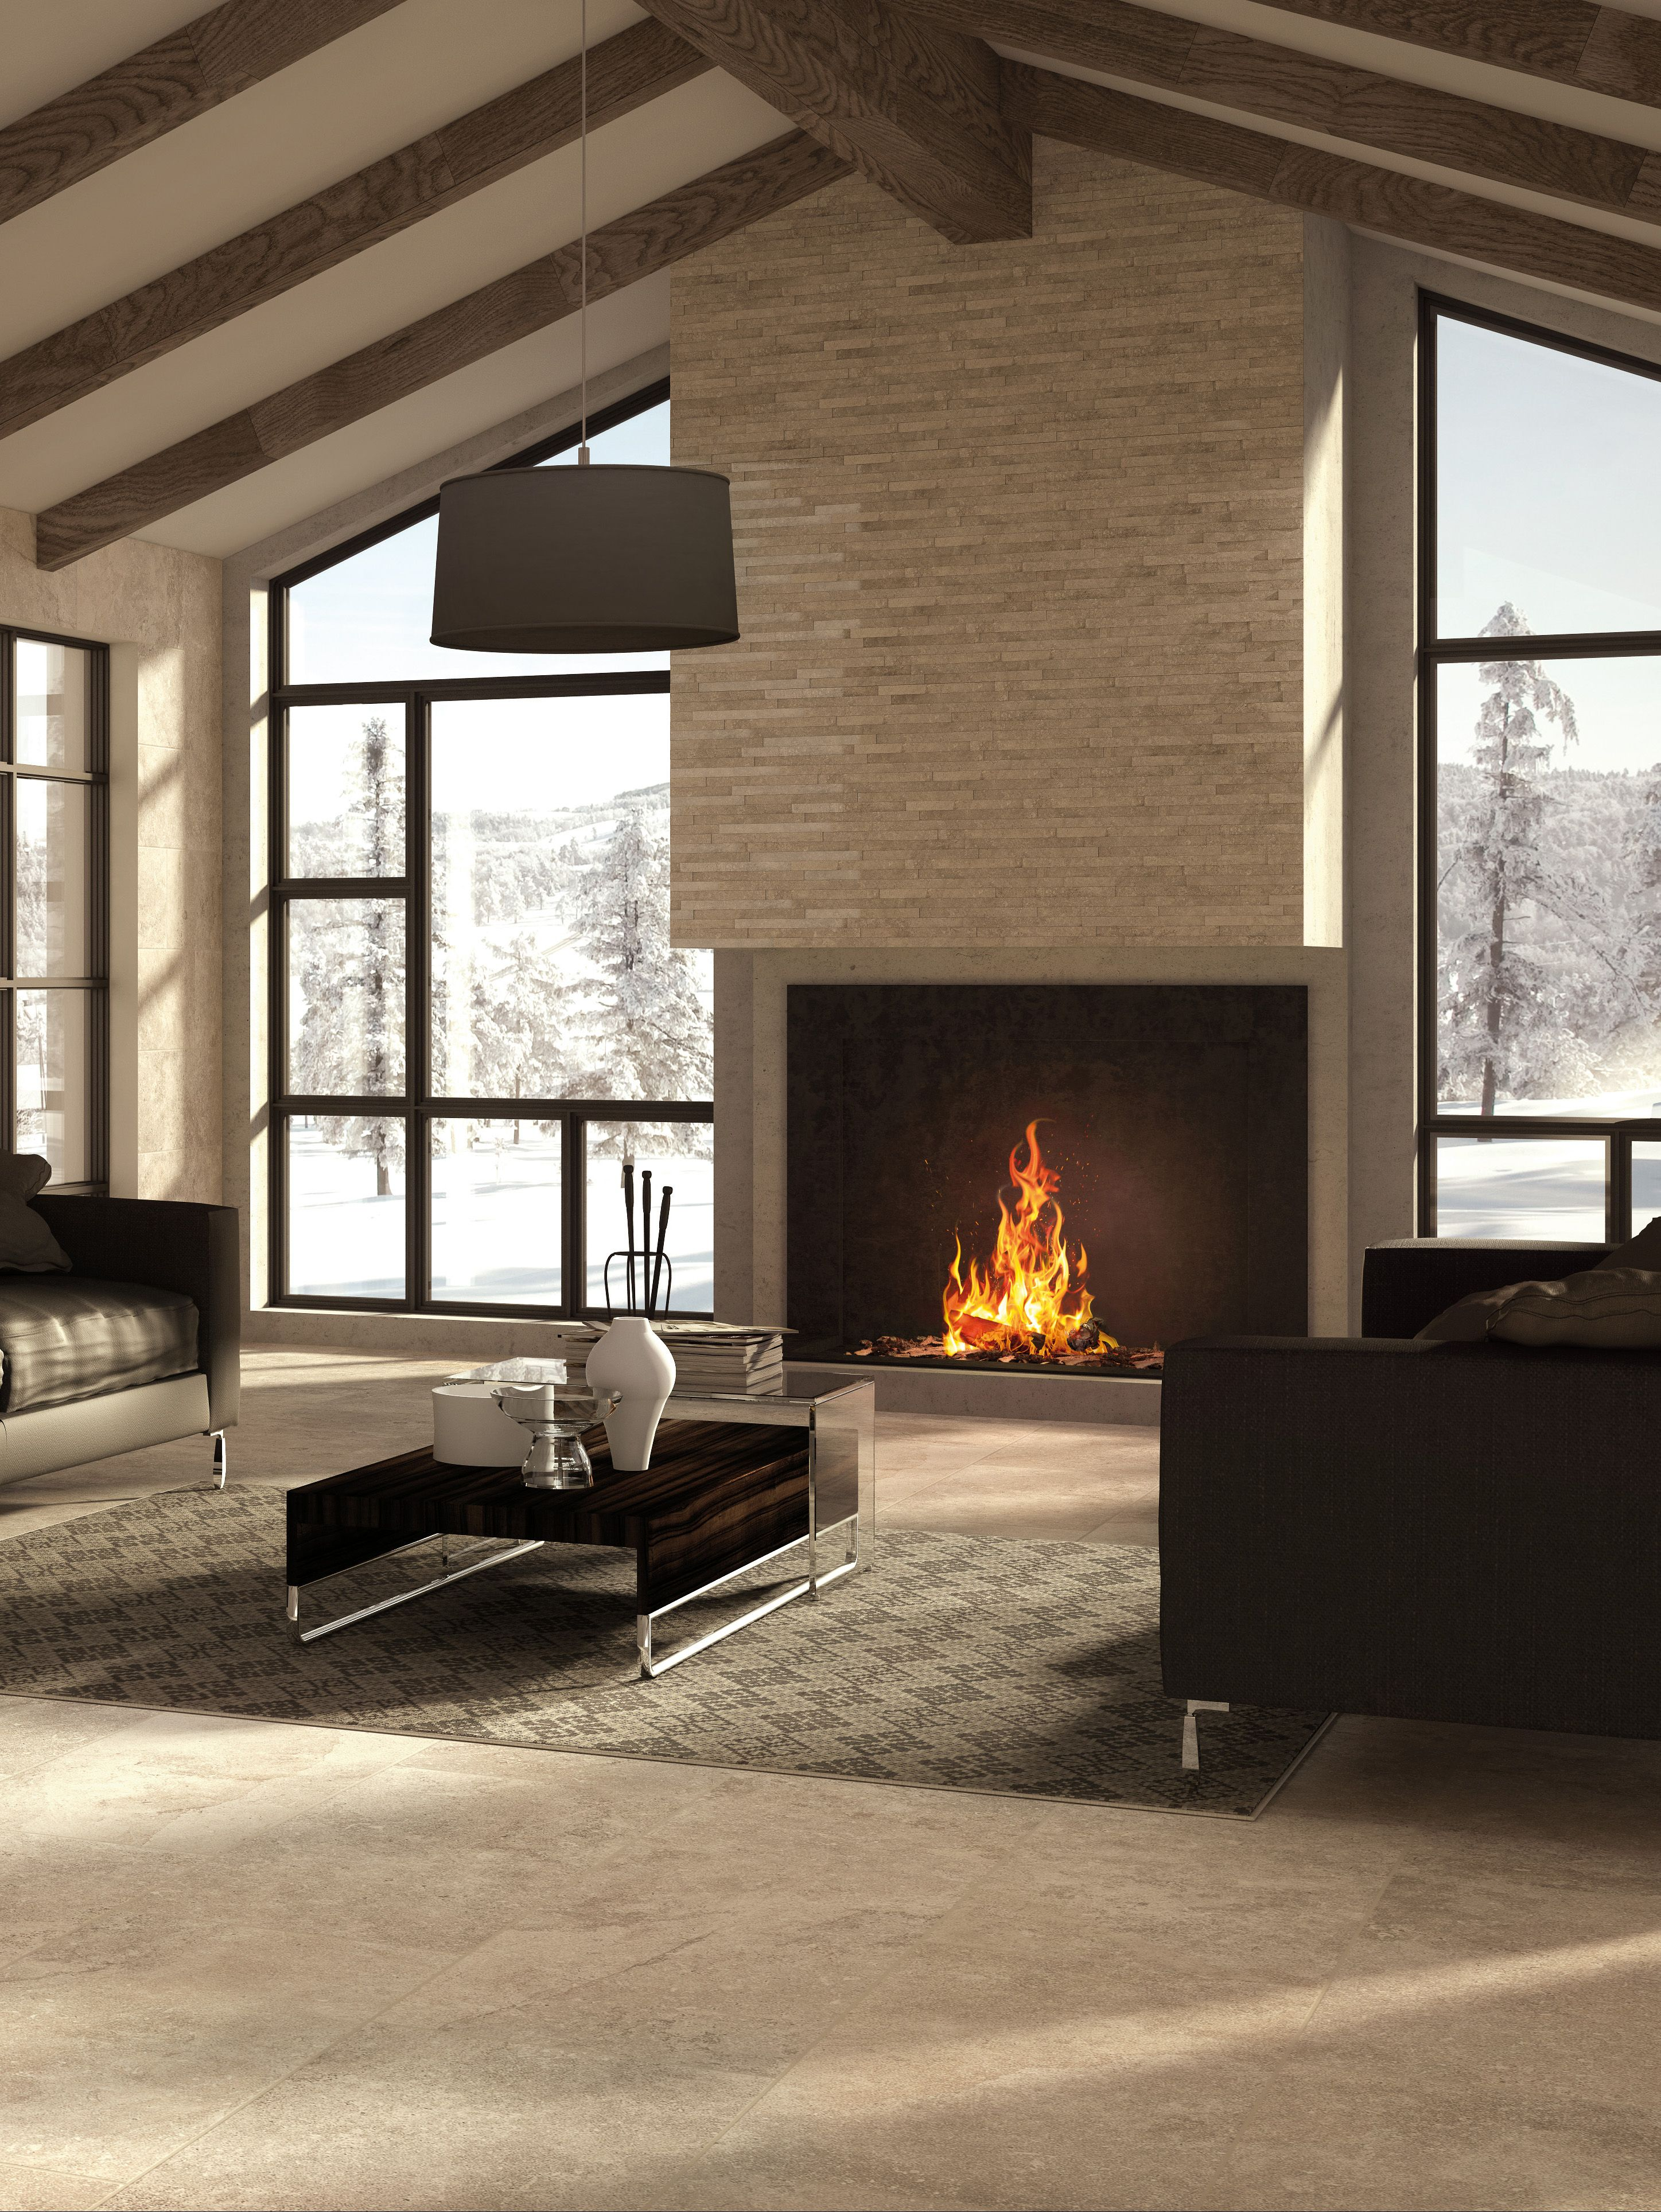 Split Face Tile Fireplace Part - 39: Universe Collection #stone Effect #tile #fireplace #winter #living  #architecture #